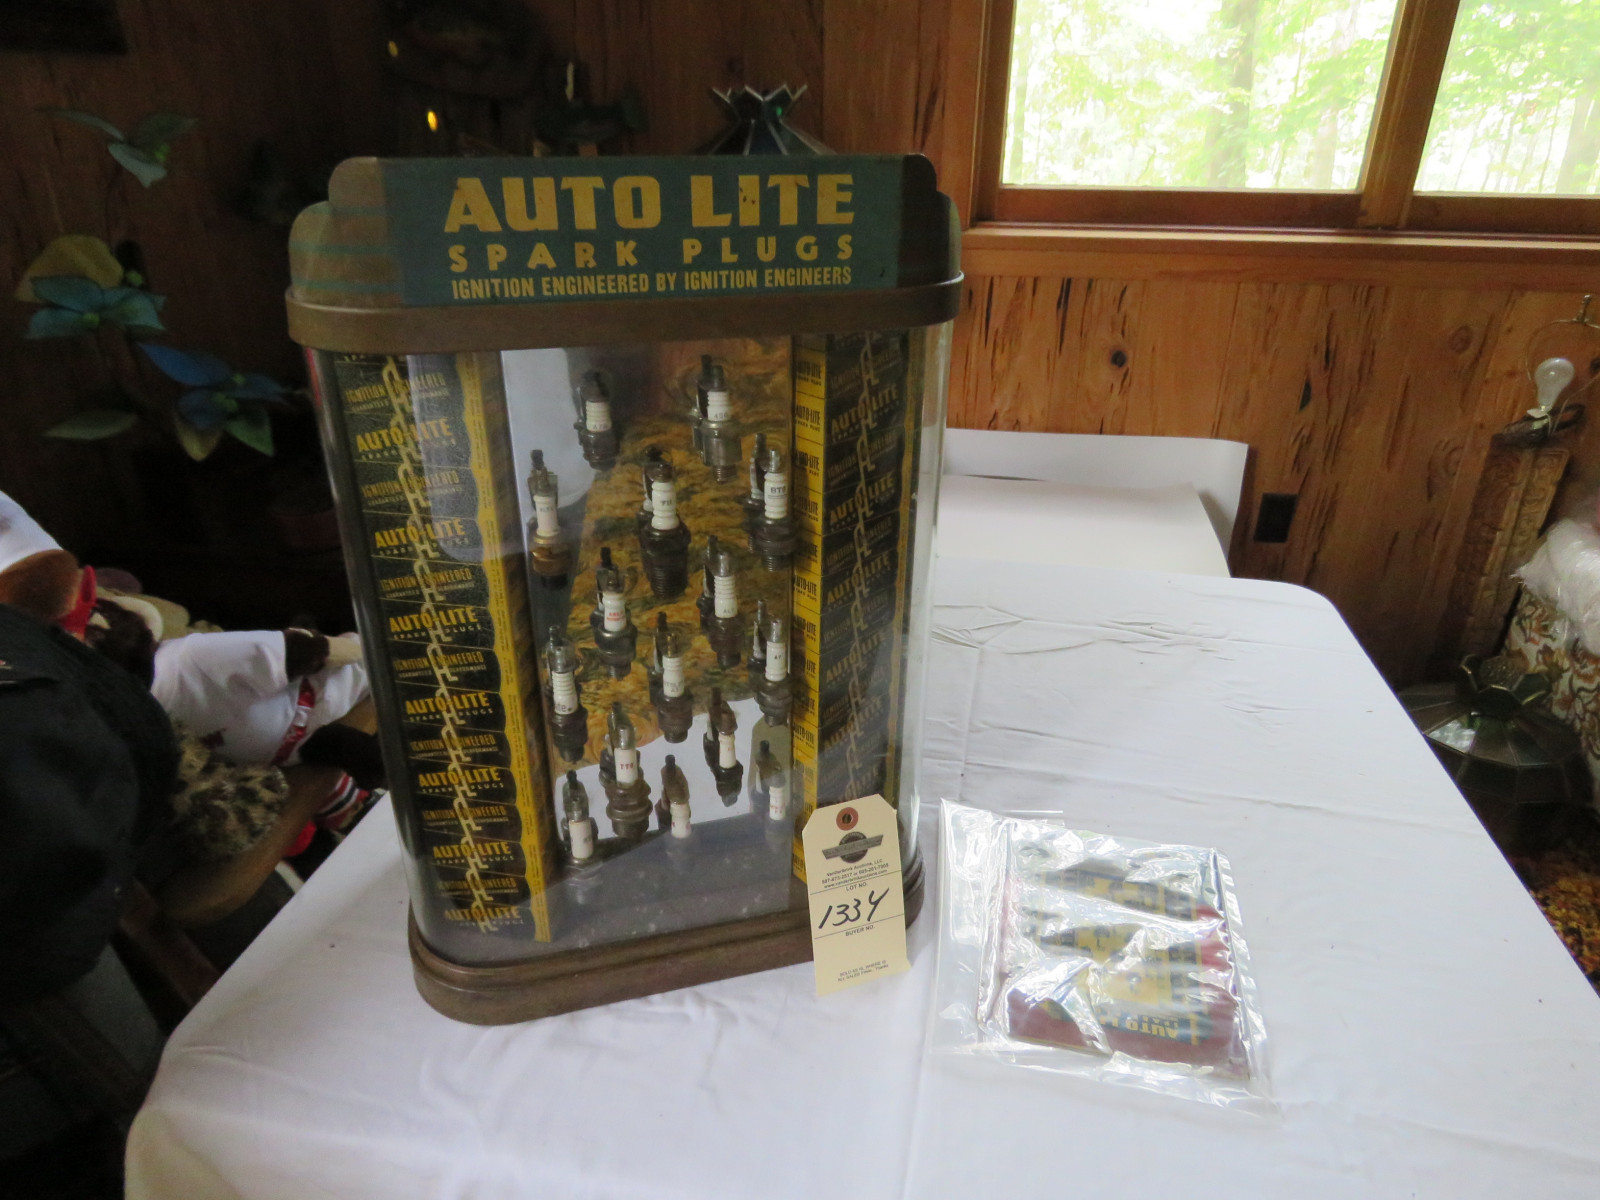 Vintage Auto Lite Spark Plug Metal Display Case and Manual - Image 1